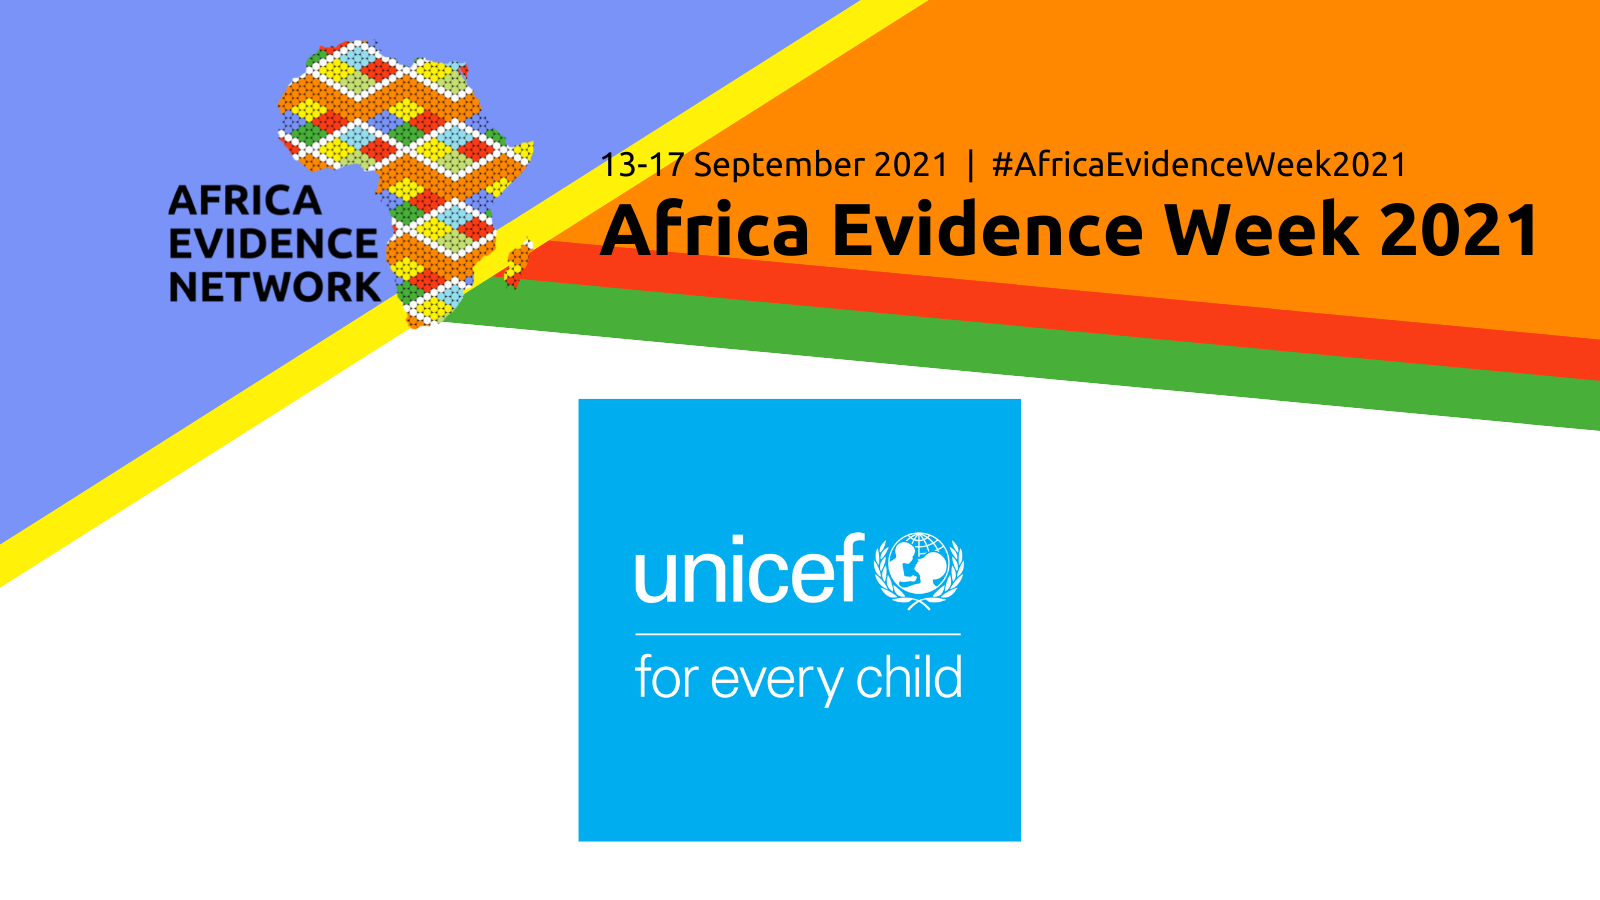 Africa Evidence Week 2021 event: Strengtheningand promoting education data systems and utilizationin Africa: lessons fromtheData Must Speak global initiative